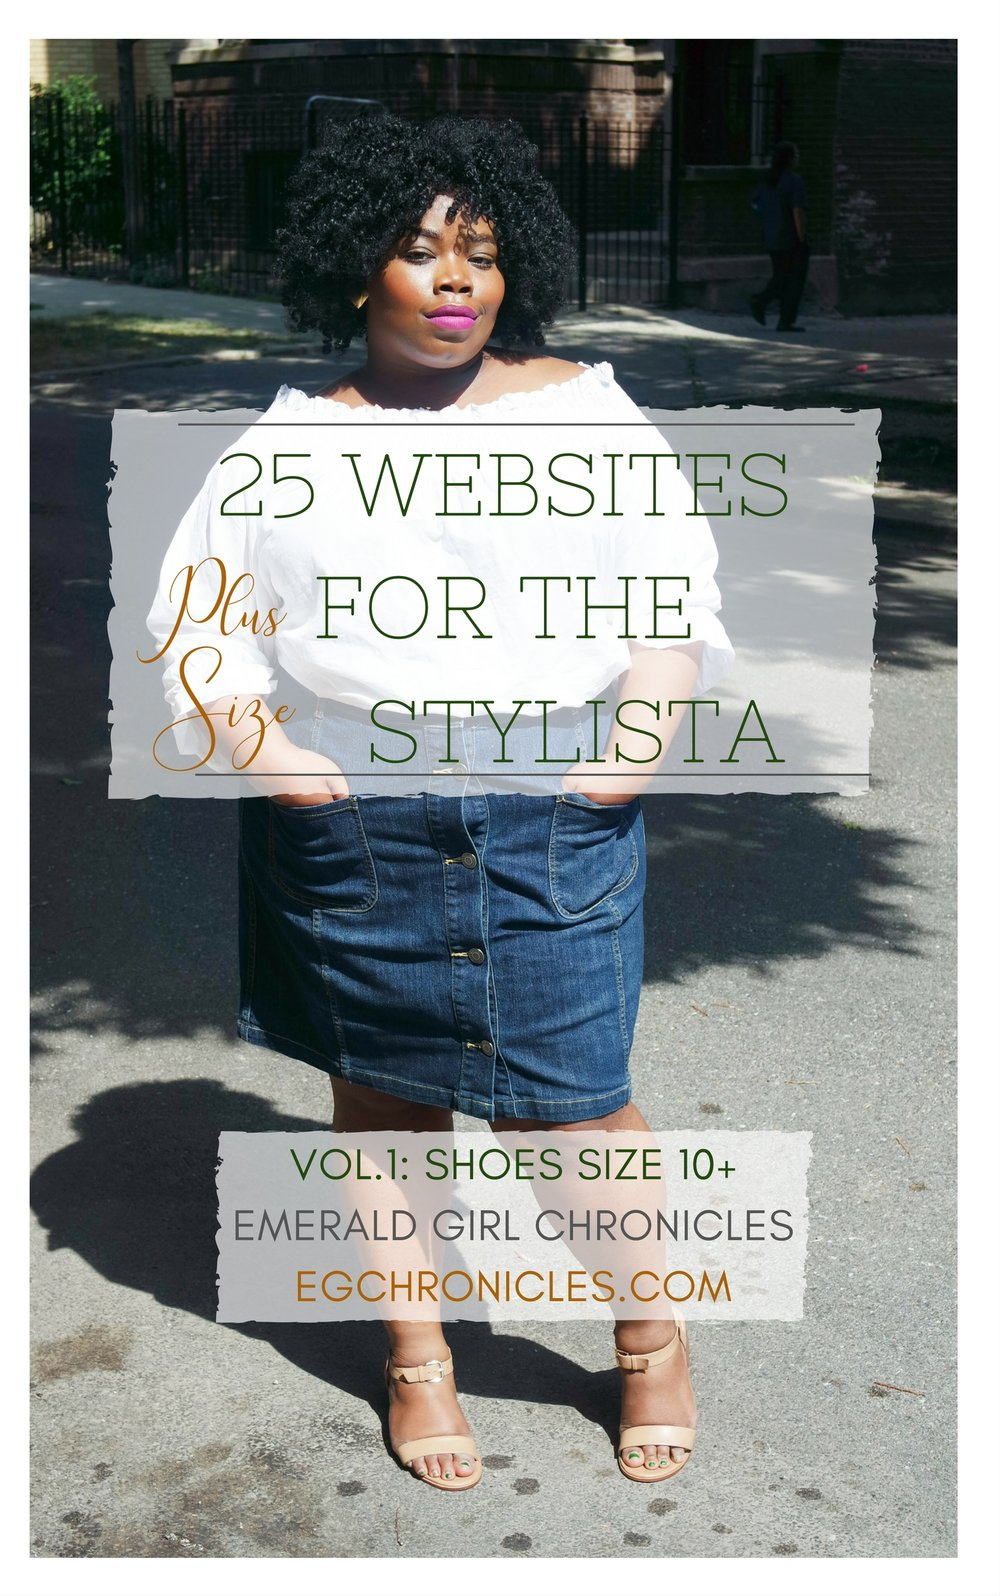 25 Plus Size Websites Vol.1 : Shoes Sz. 10+